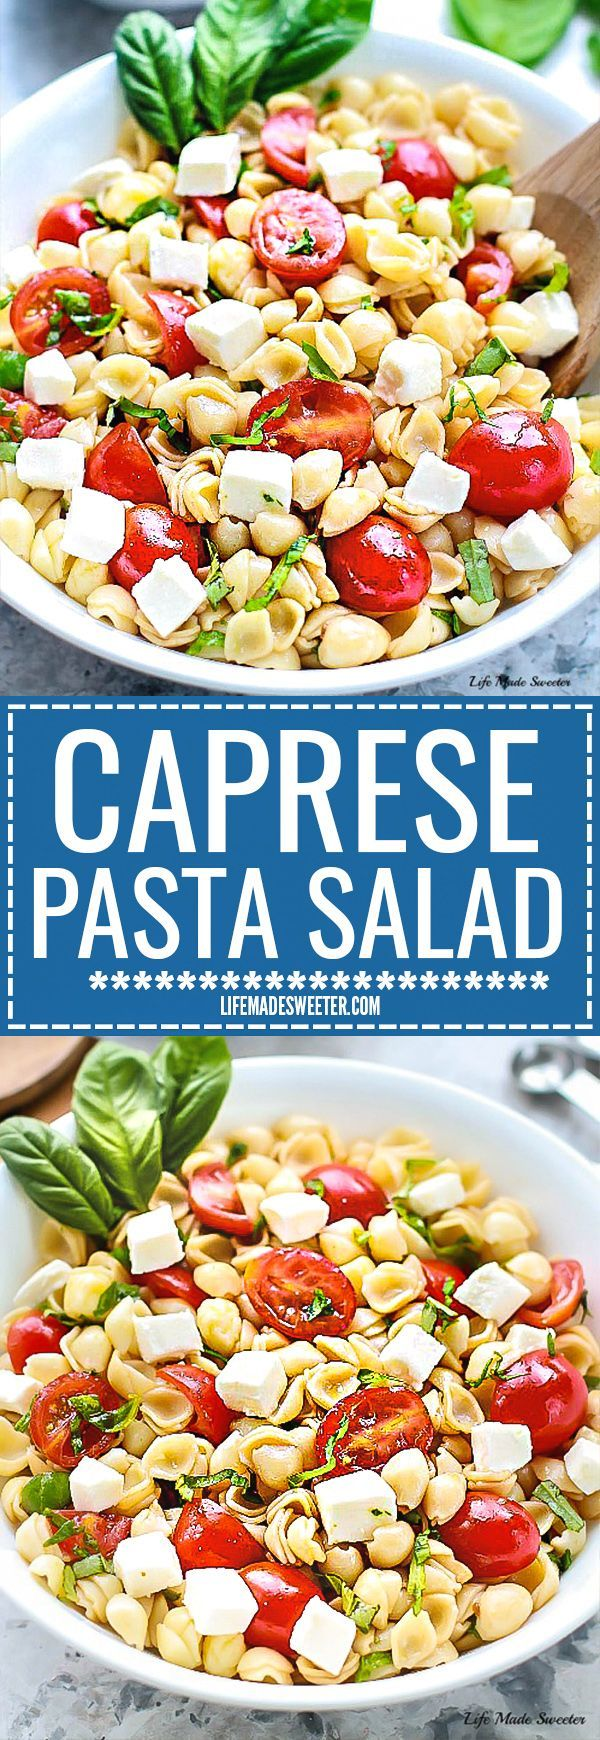 205 best Pasta images on Pinterest   Pasta, Cooking recipes and ...